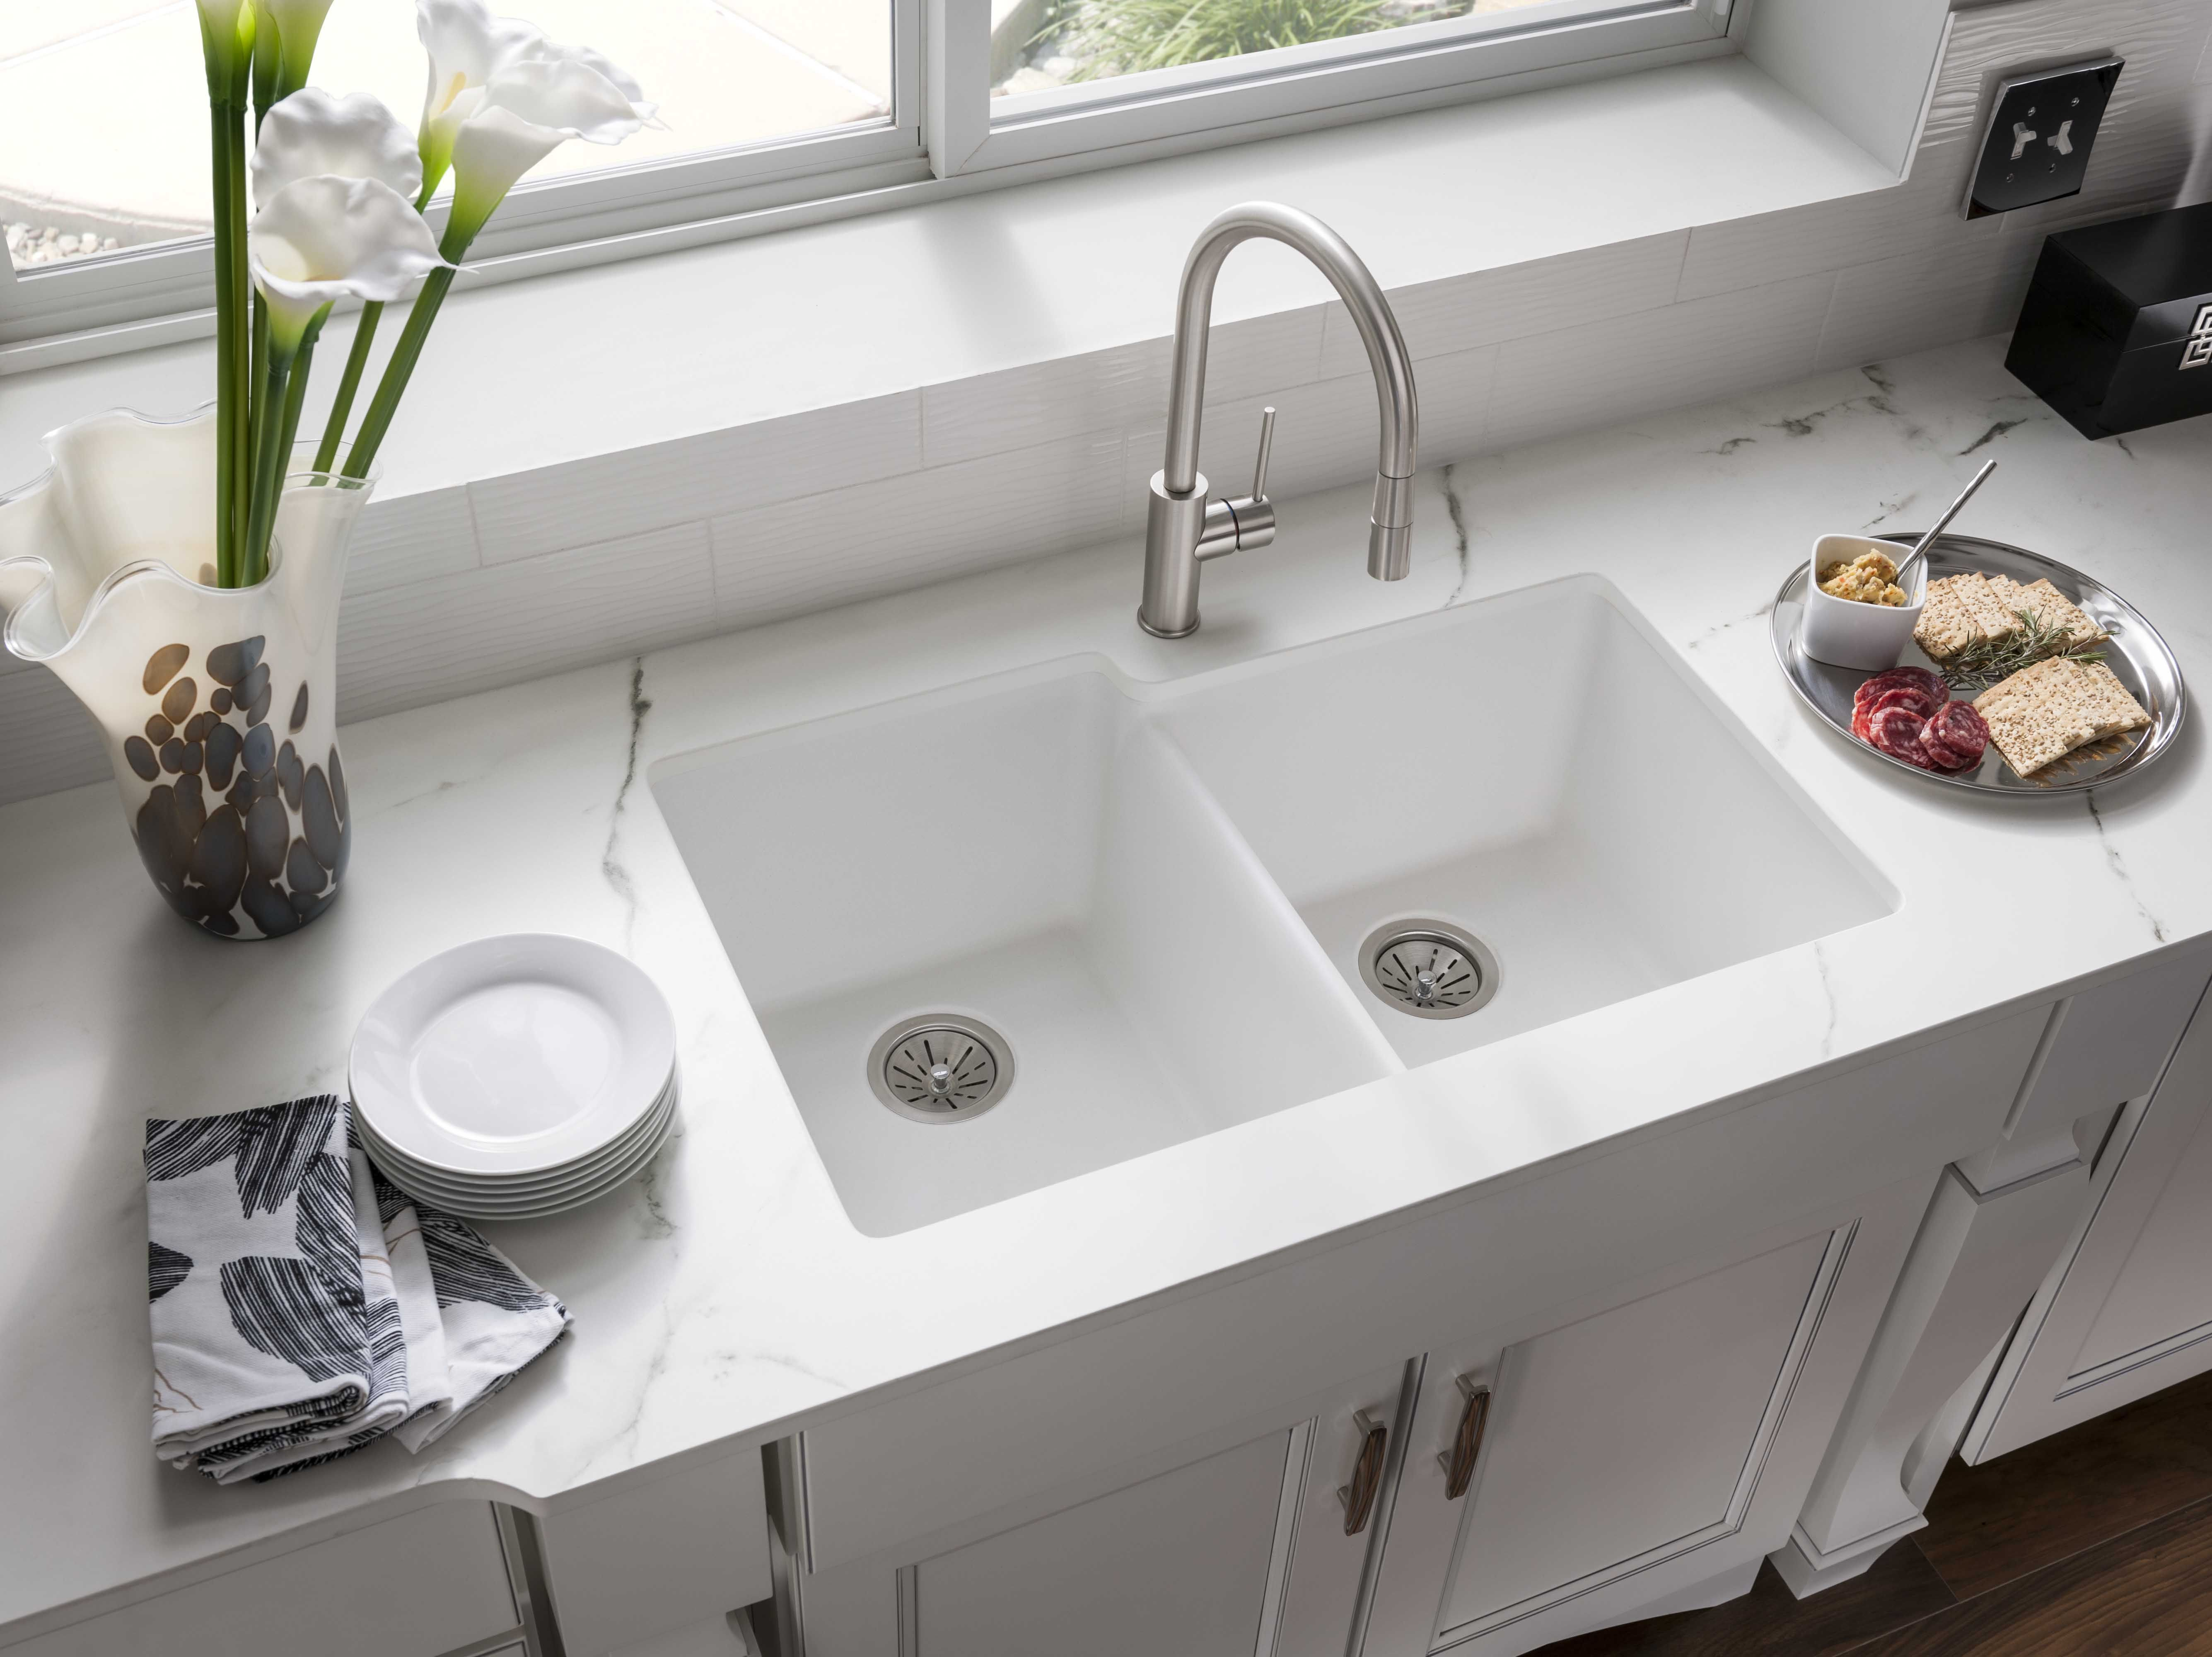 Elkay Quartz Classic Kitchen Sinks Have A Smooth Surface And A Visible Depth To Their Structure Undermount Kitchen Sinks White Kitchen Sink Best Kitchen Sinks